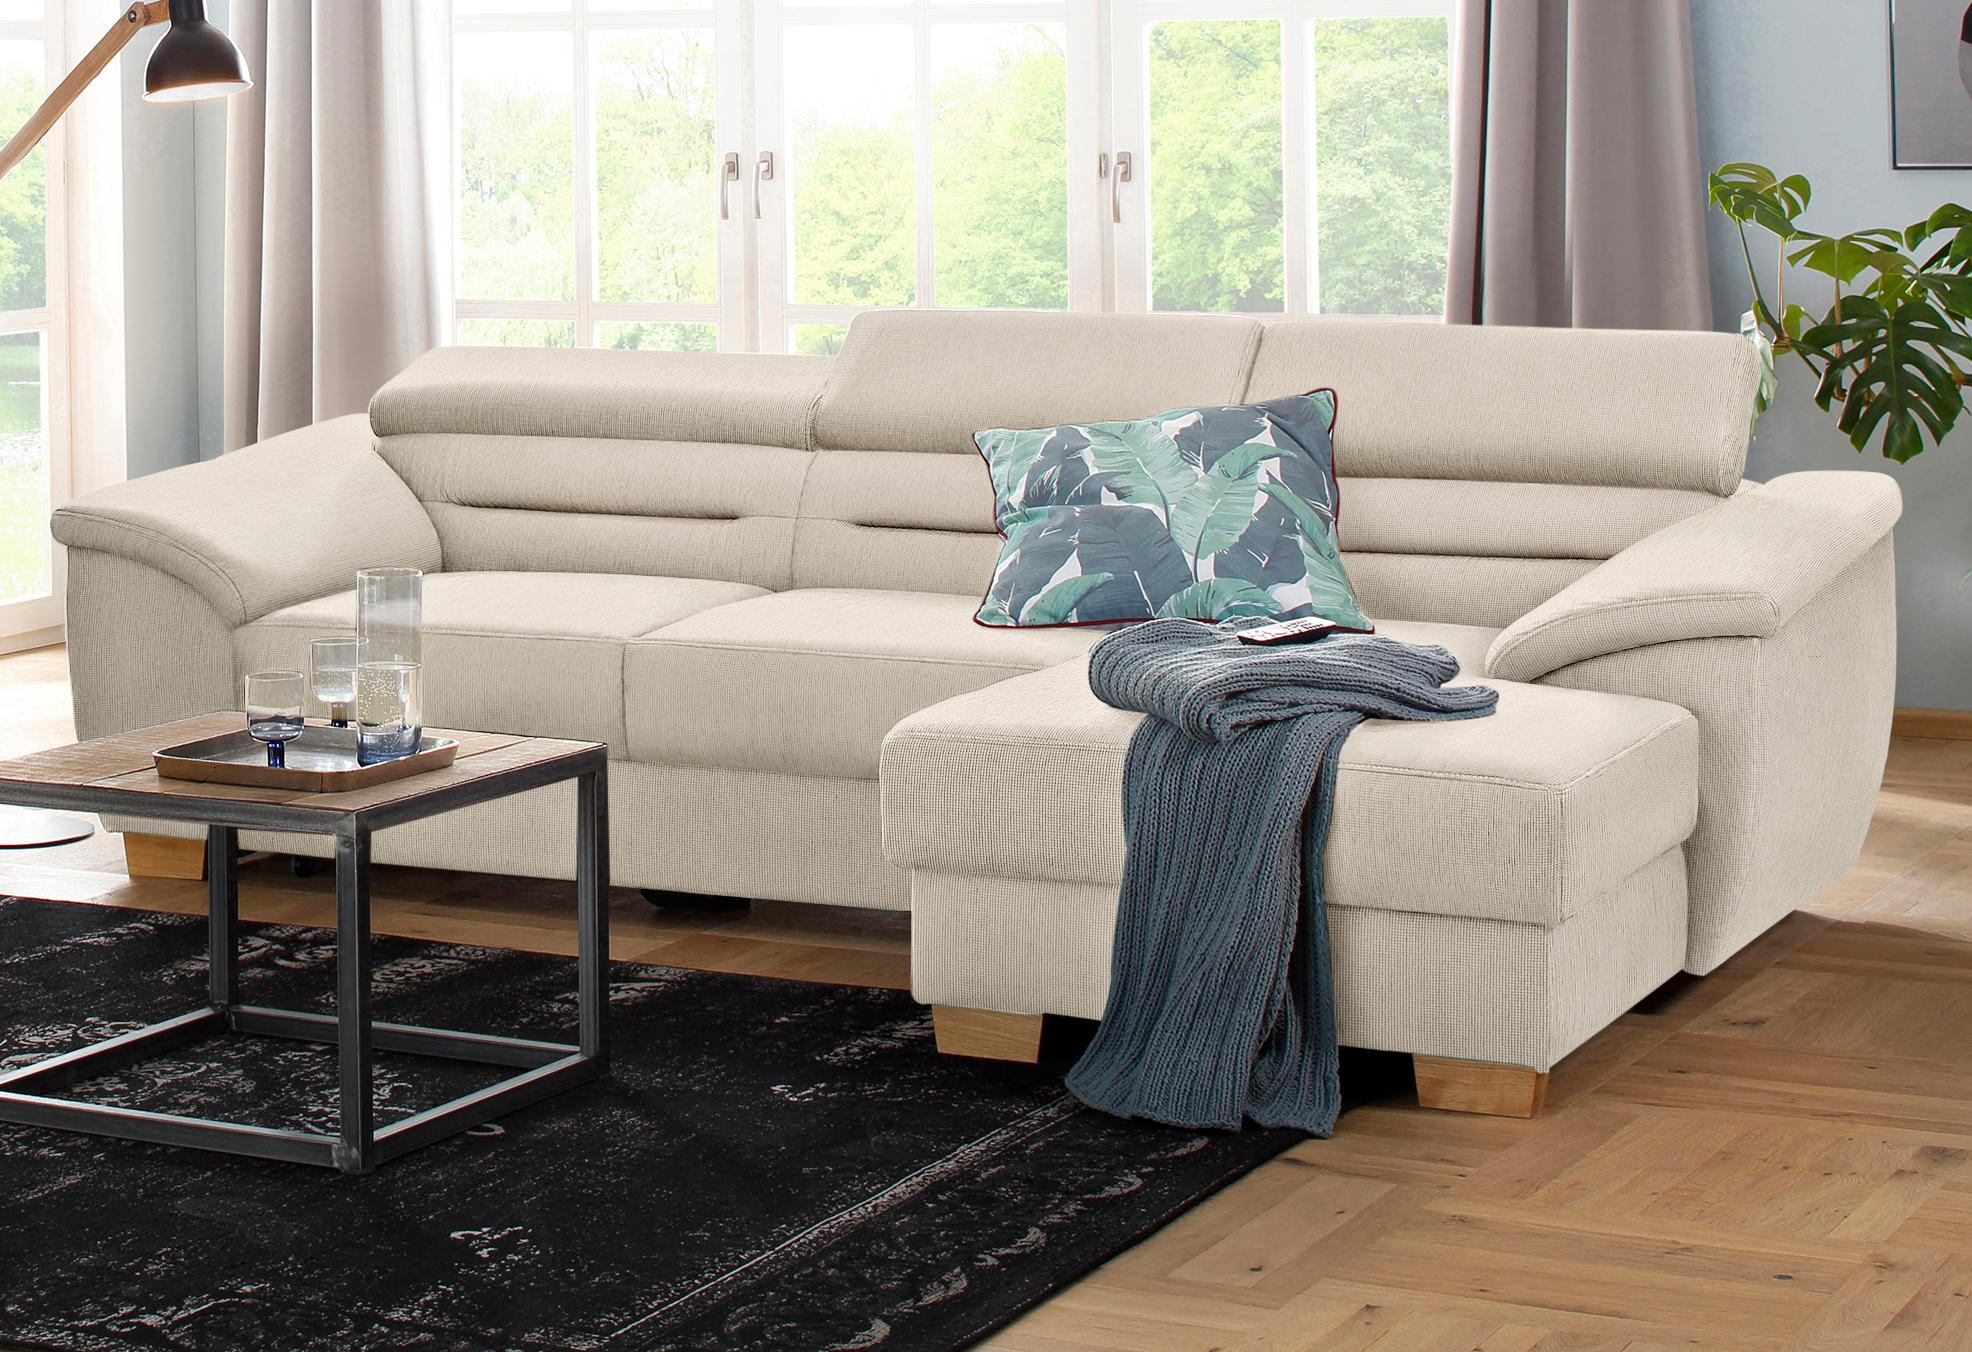 Home affaire Ecksofa Sari